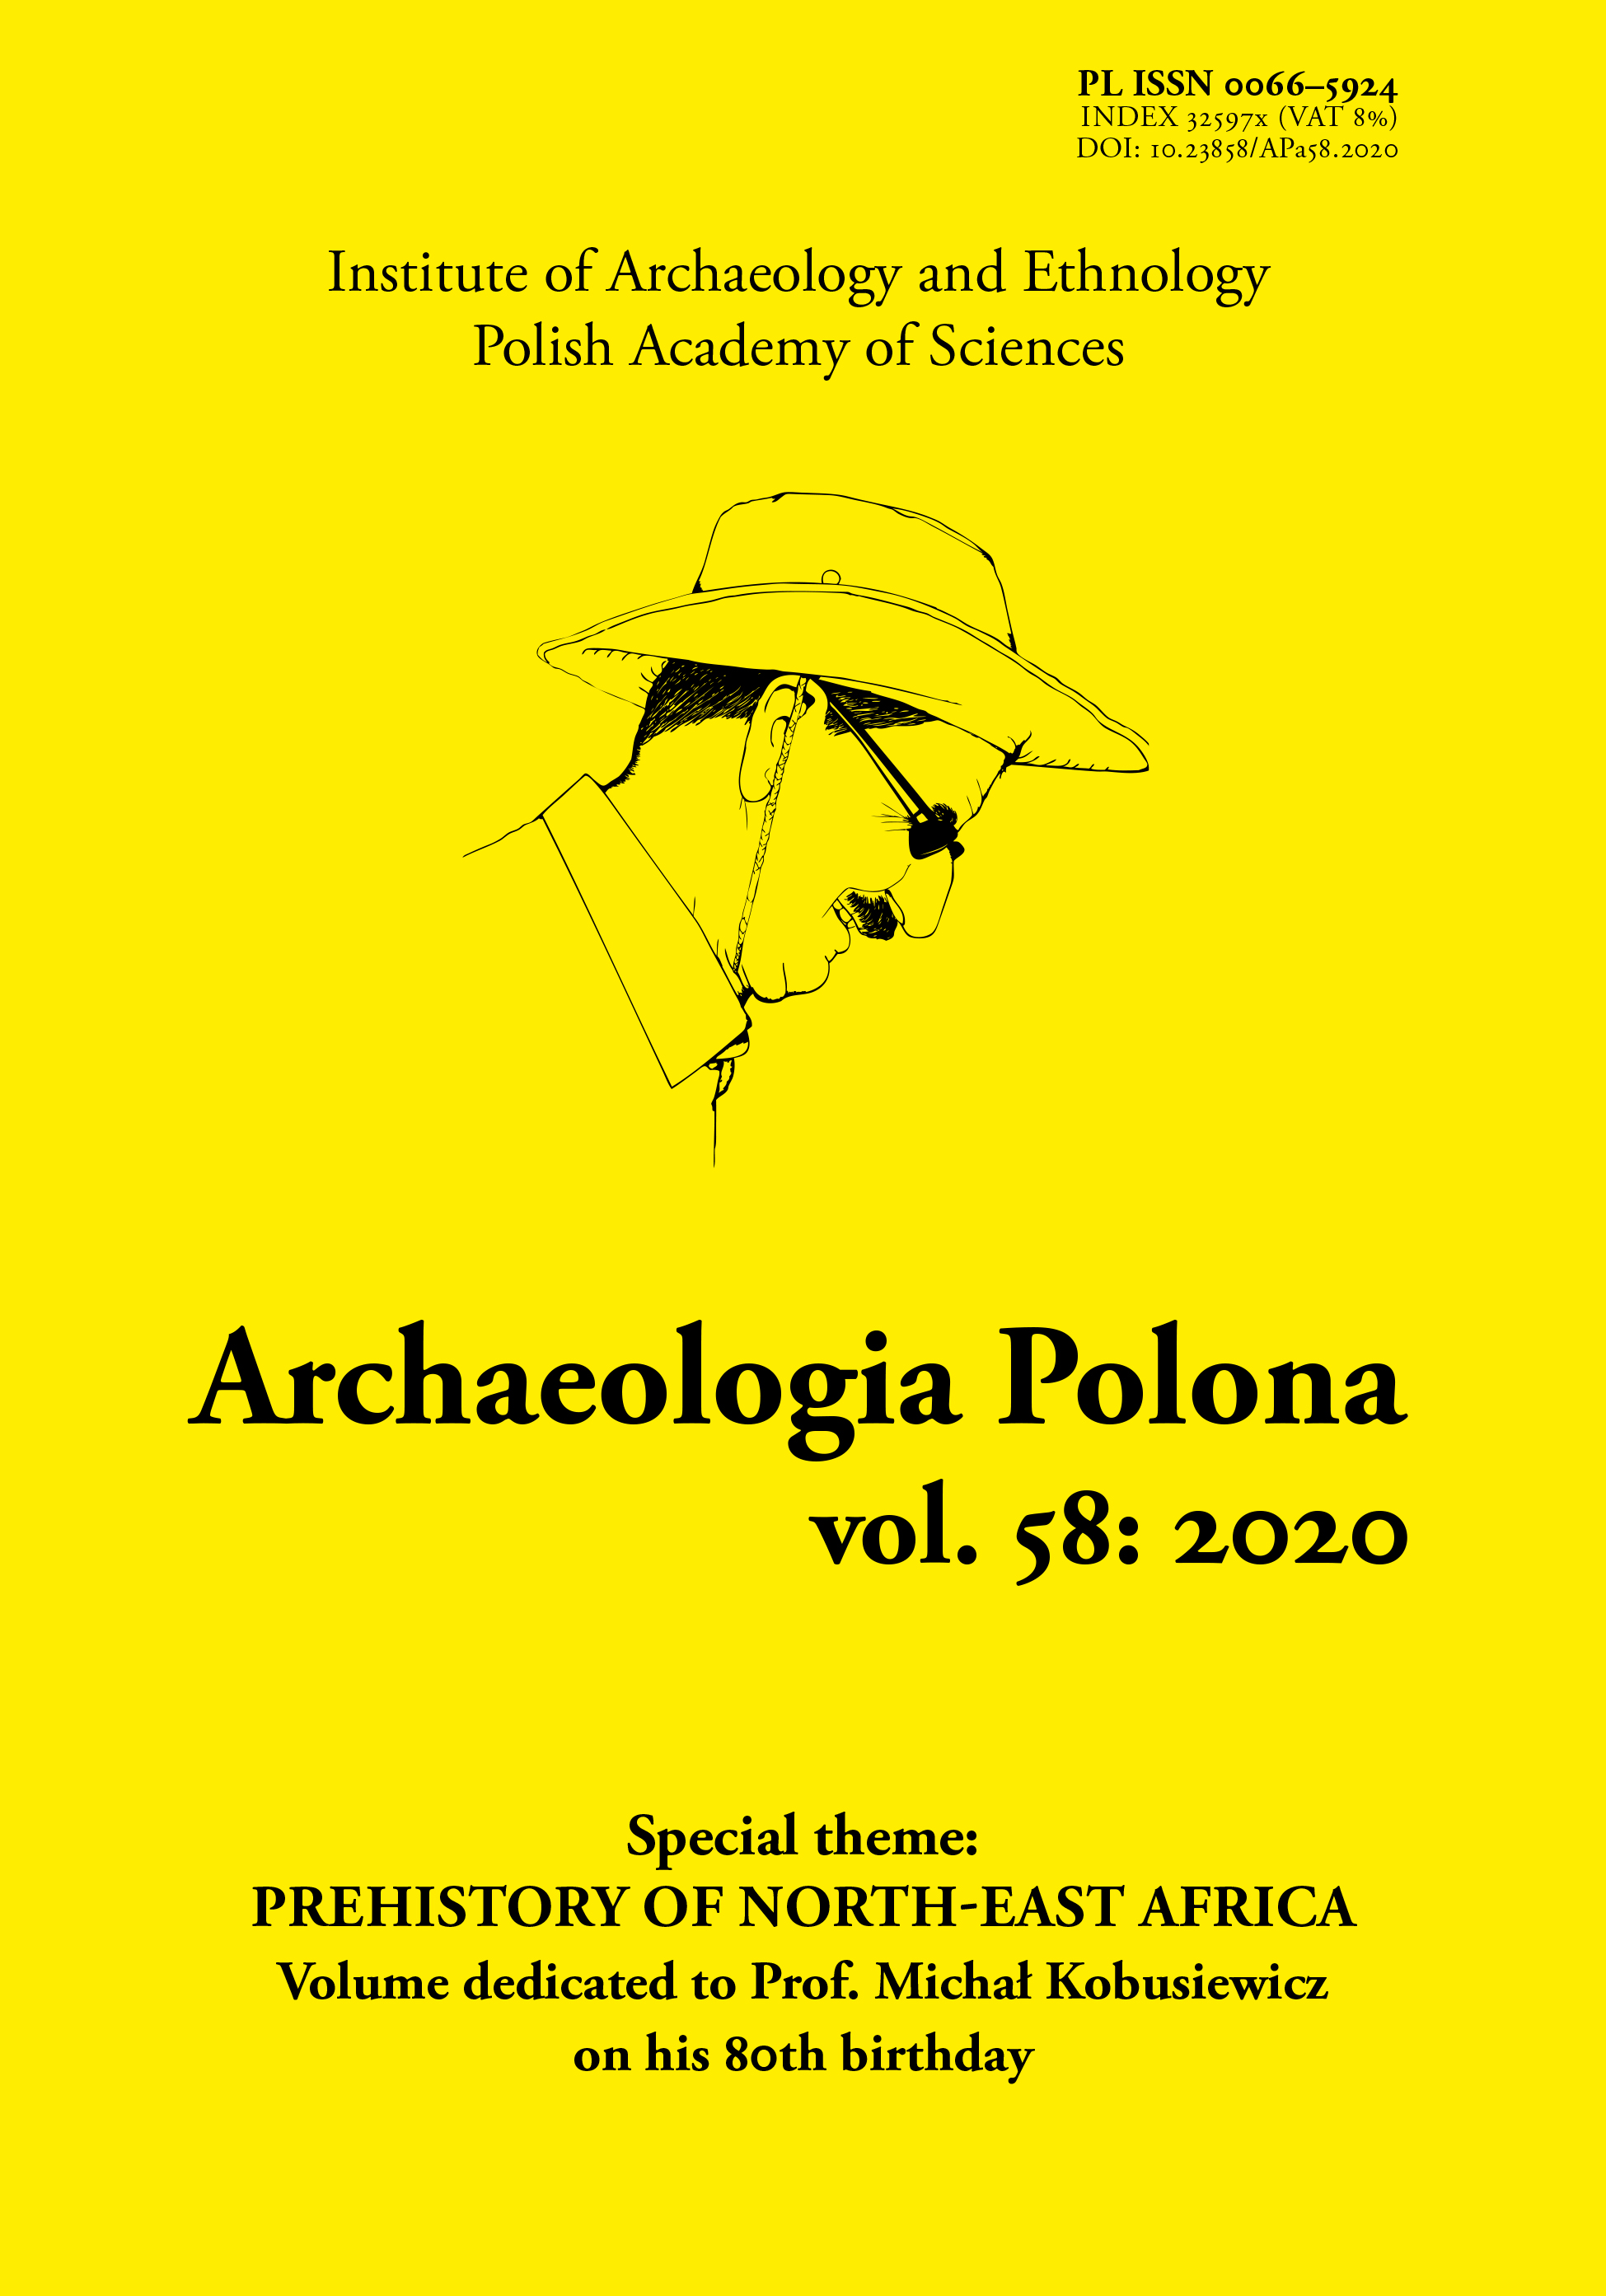 Prehistory of North-East Africa